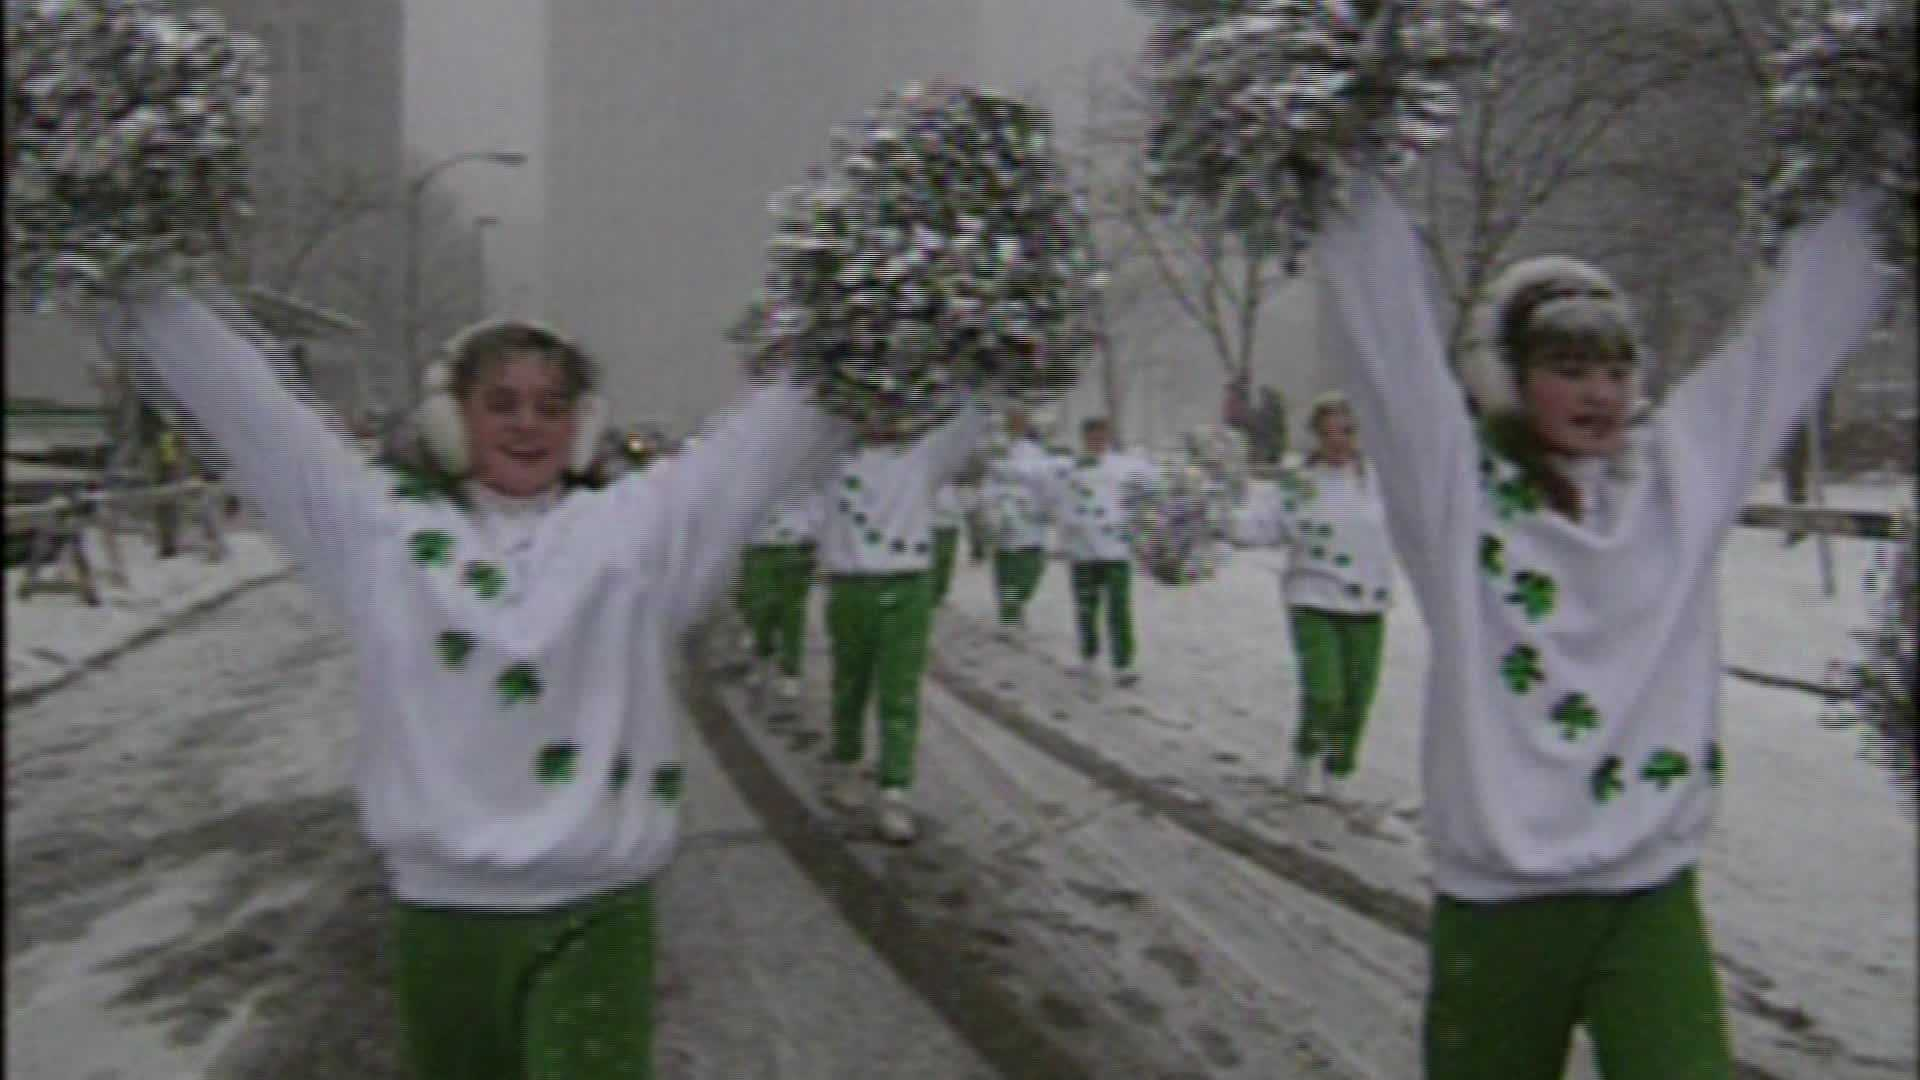 Pittsburgh experienced a different kind of March madness in 1993. A blizzard blanketed the city with snow but didn't stop the St. Patrick's Day Parade.